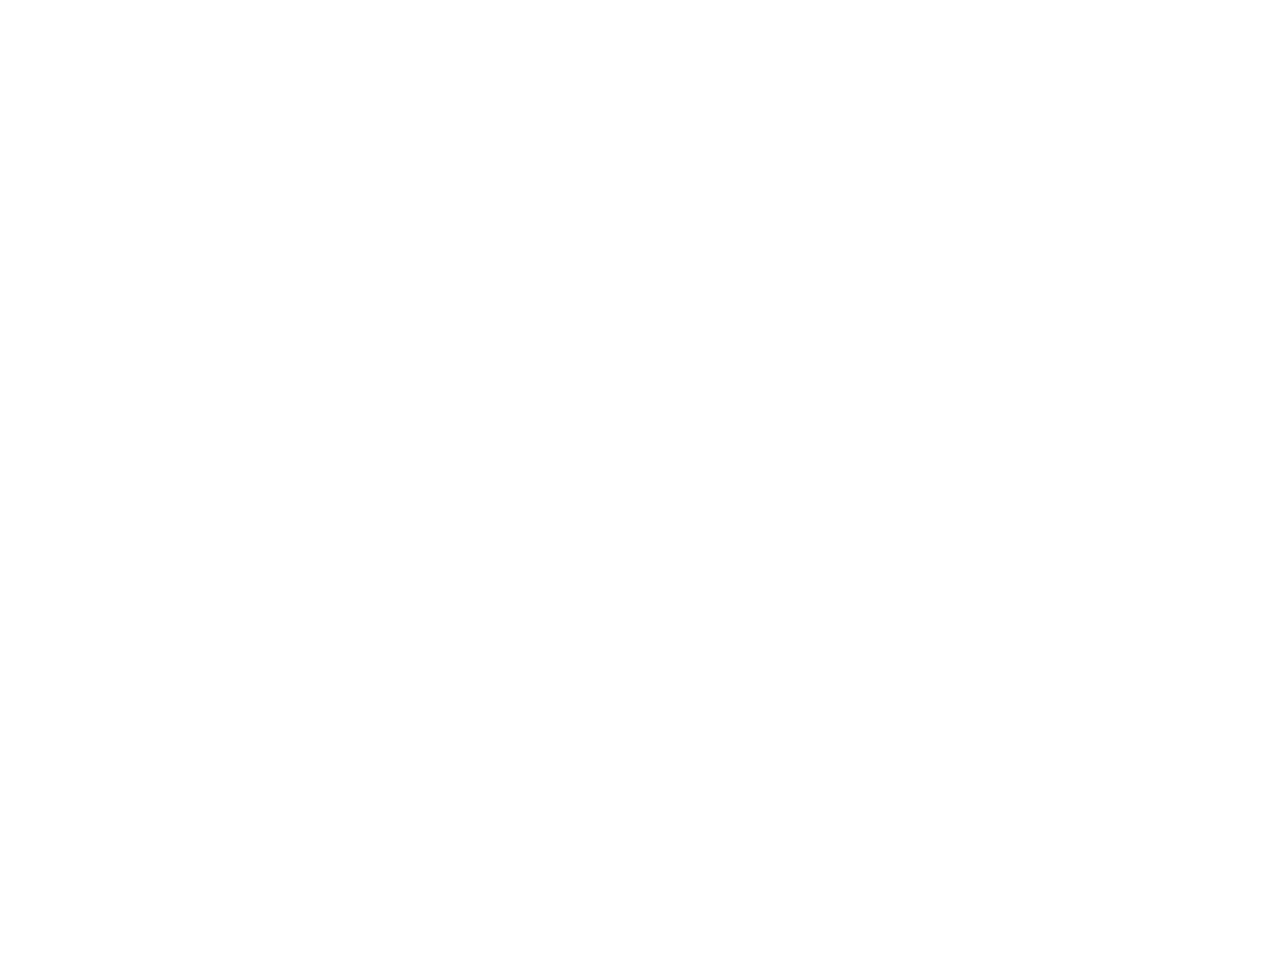 BT Restaurant / Tavern